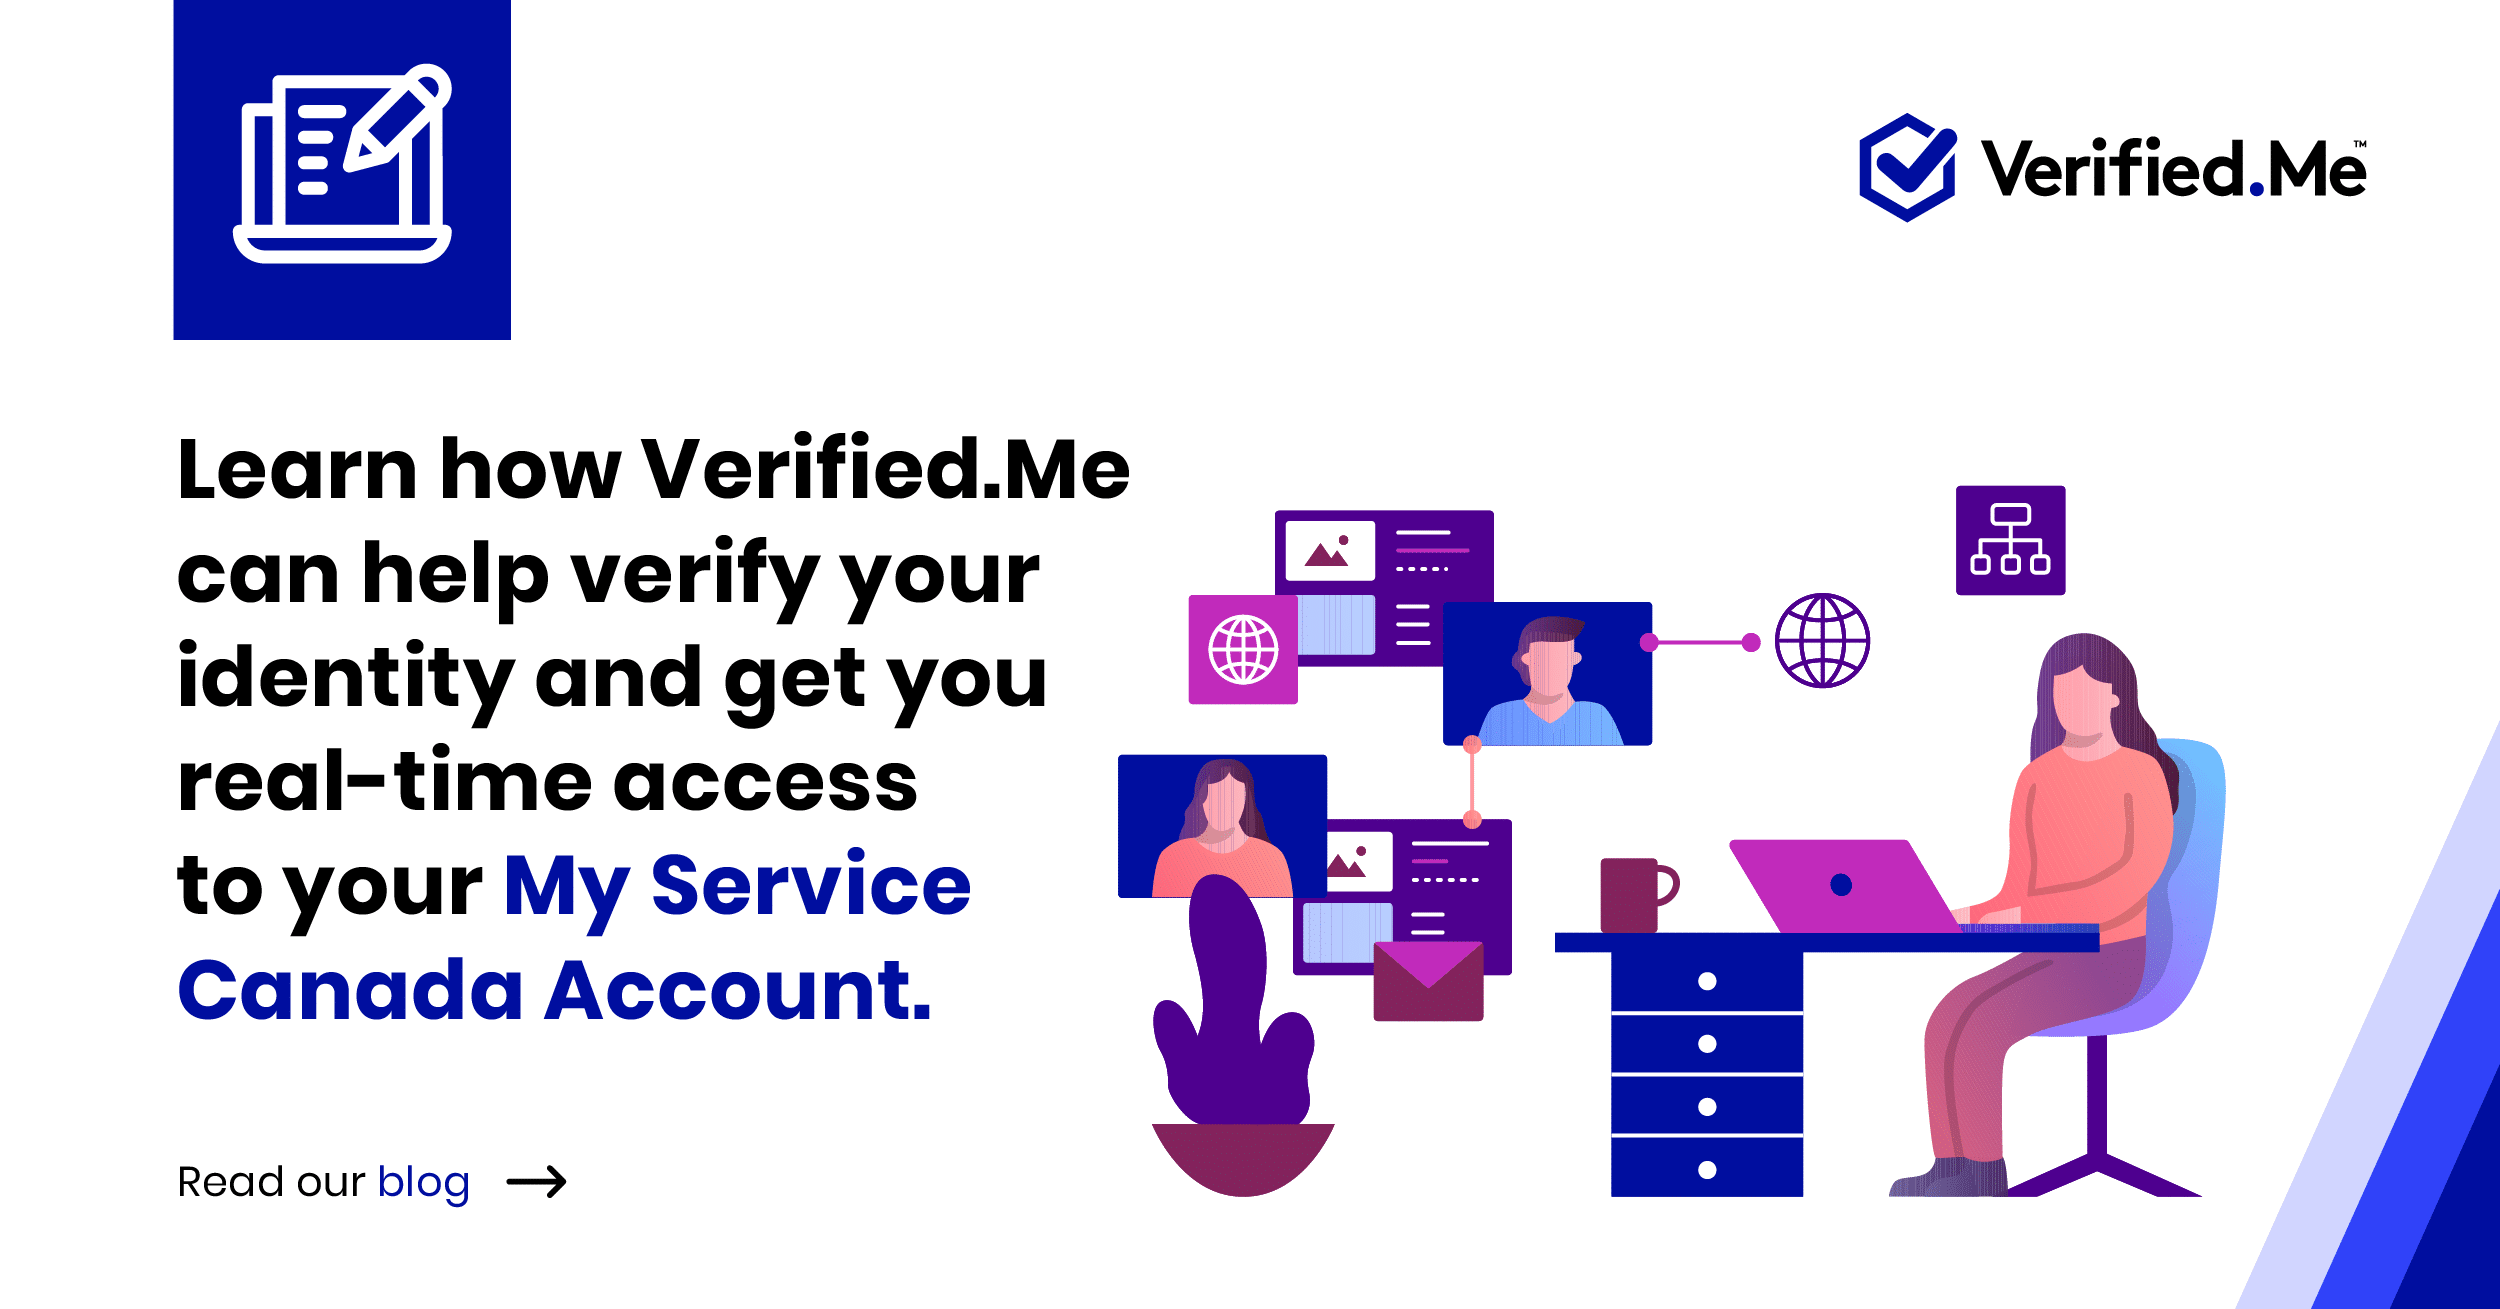 Employment and Social Development Canada (ESDC) adopts Verified.Me to help bring Canadians a streamlined digital identity verification solution